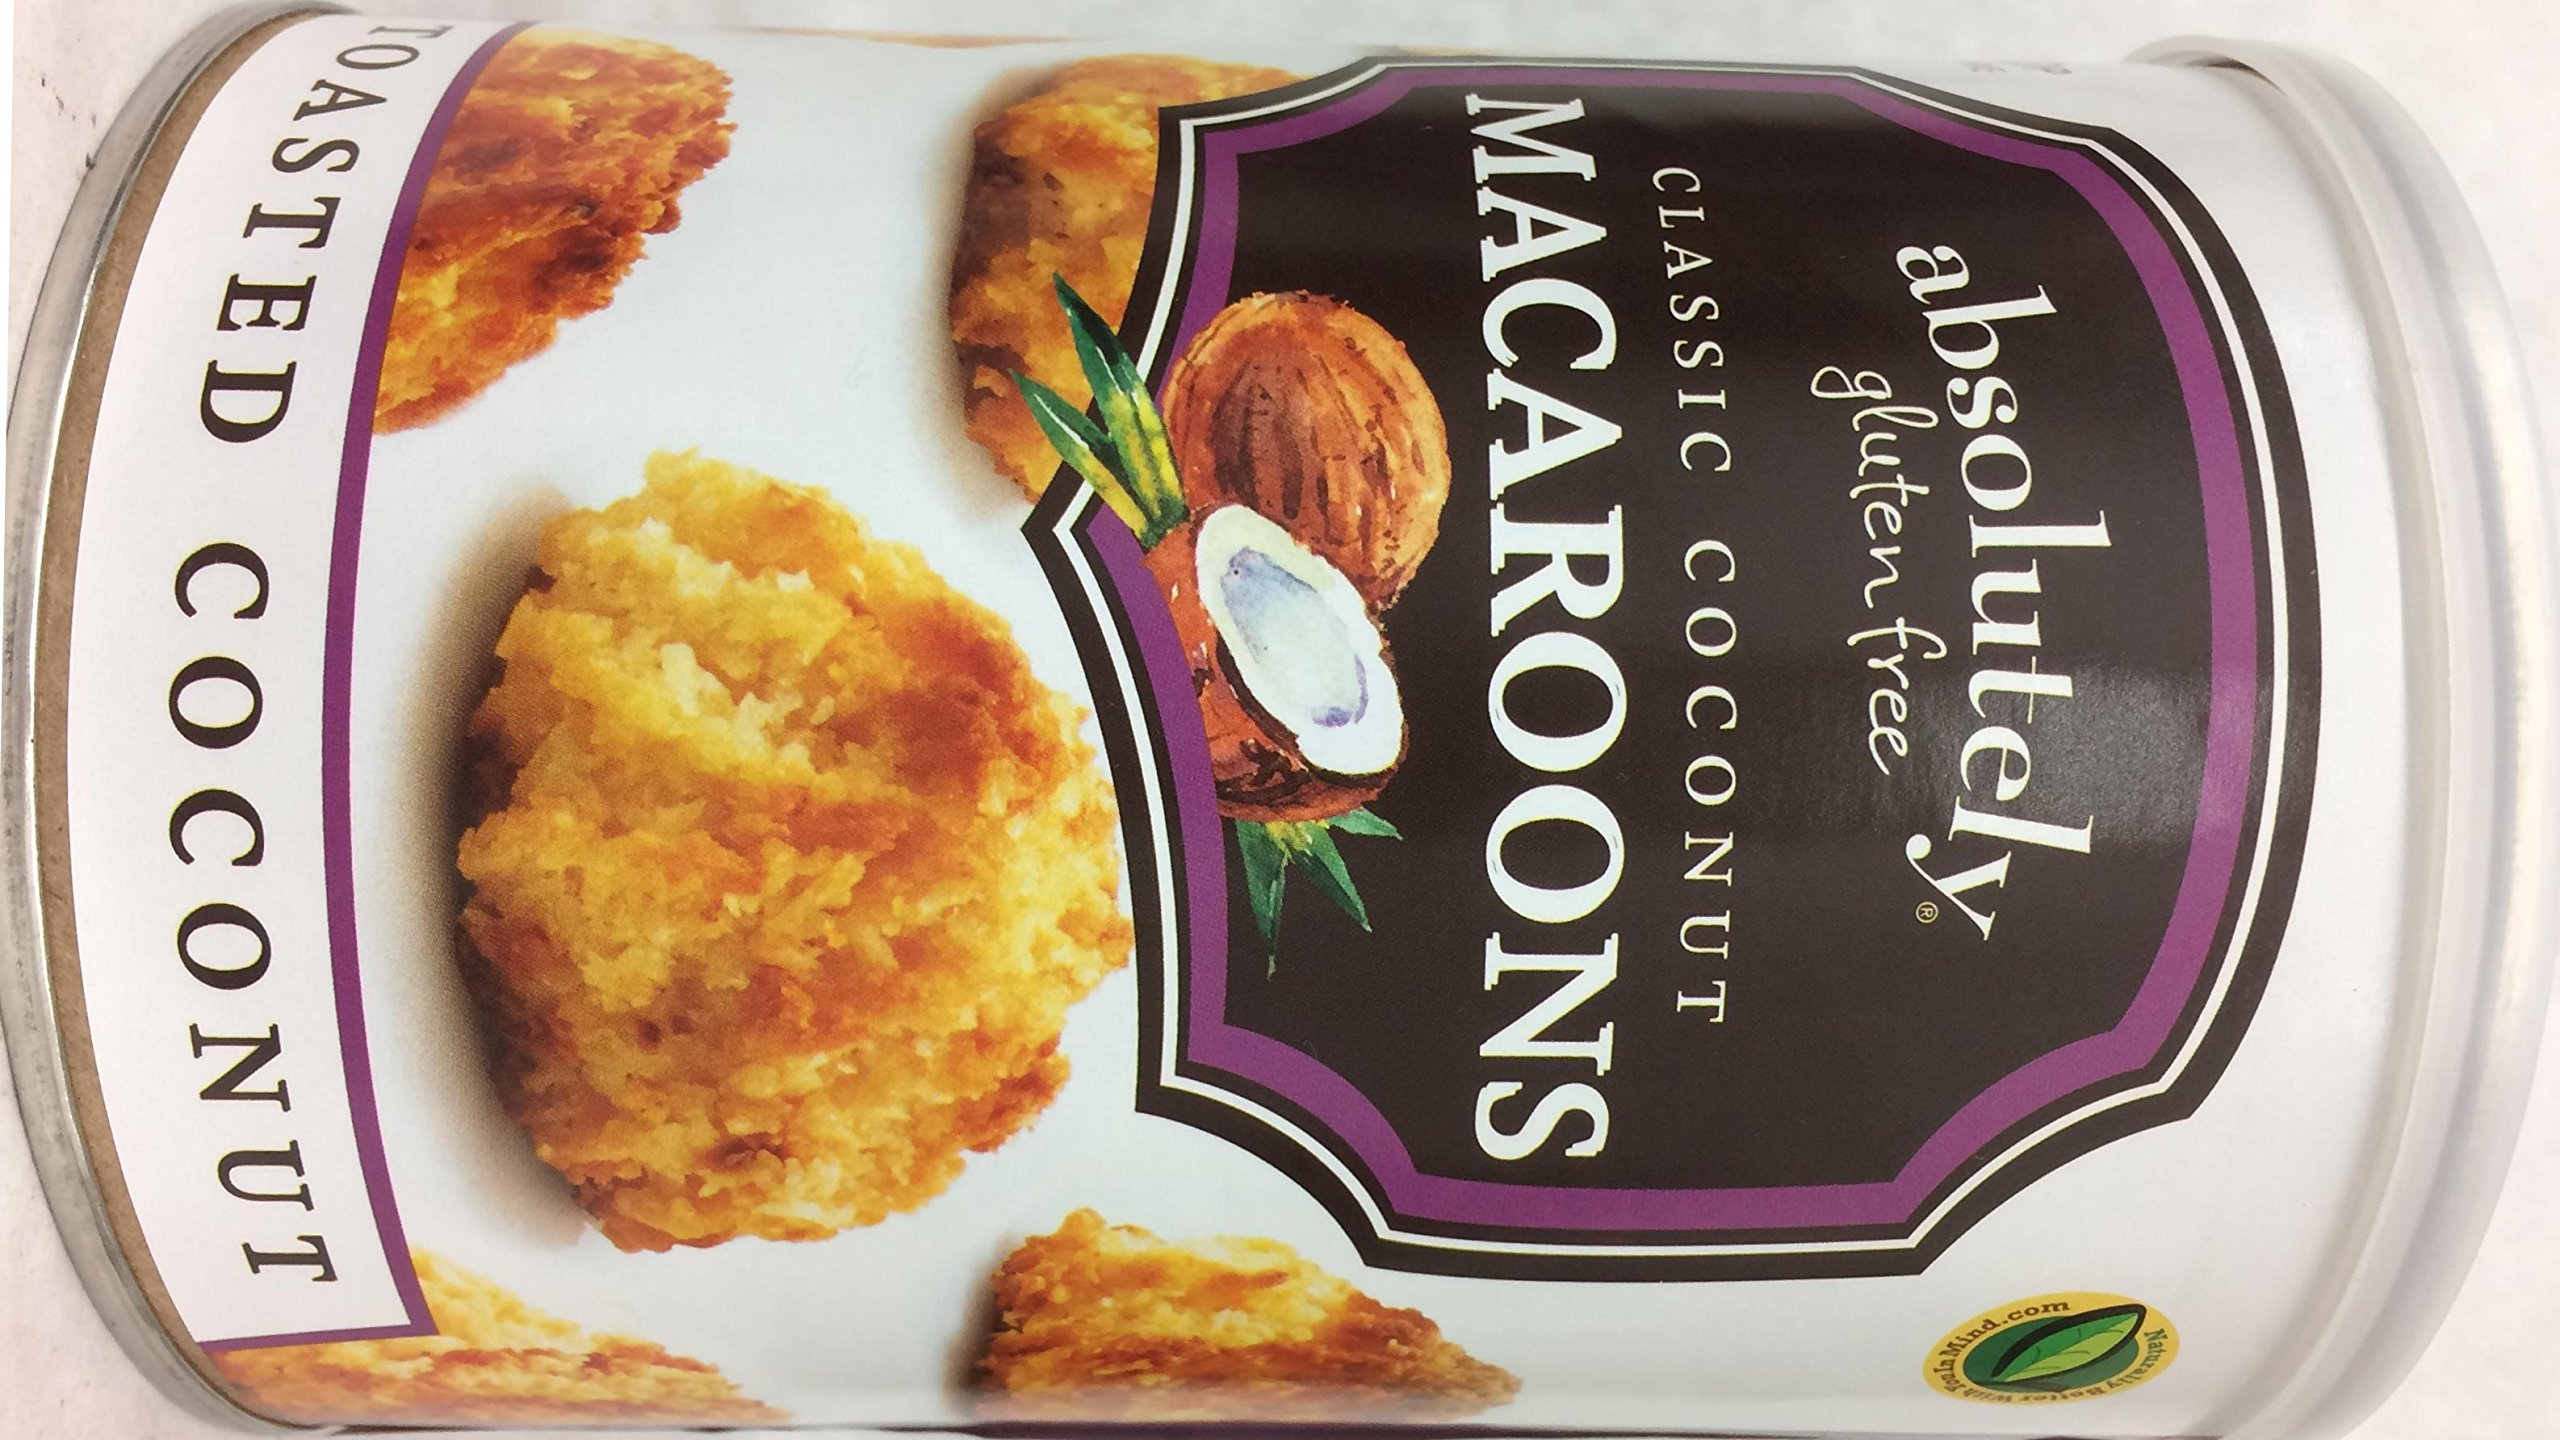 Absolutely Gluten Free Classic Toasted Coconut Macaroons Kosher For Passover 10 oz. (Pack of 8)